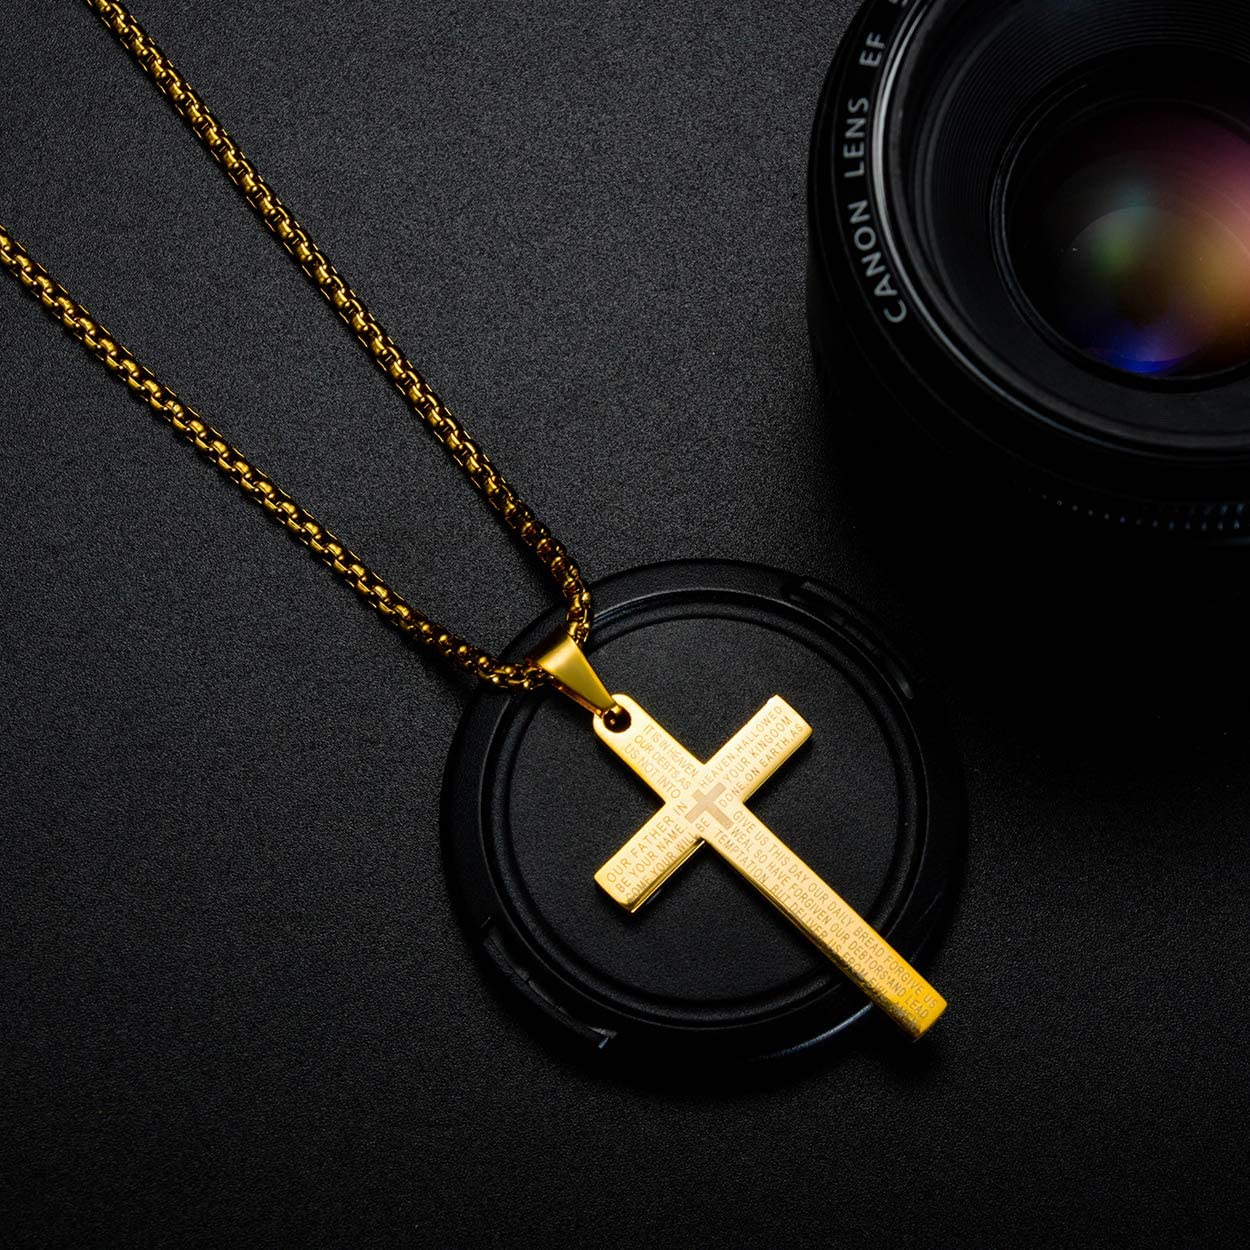 Rehoboth Stainless Steel Lords Prayer Cross Pendant Necklaces Bible Verse for Men or Women Chain 24 Inch Black Gold Silver